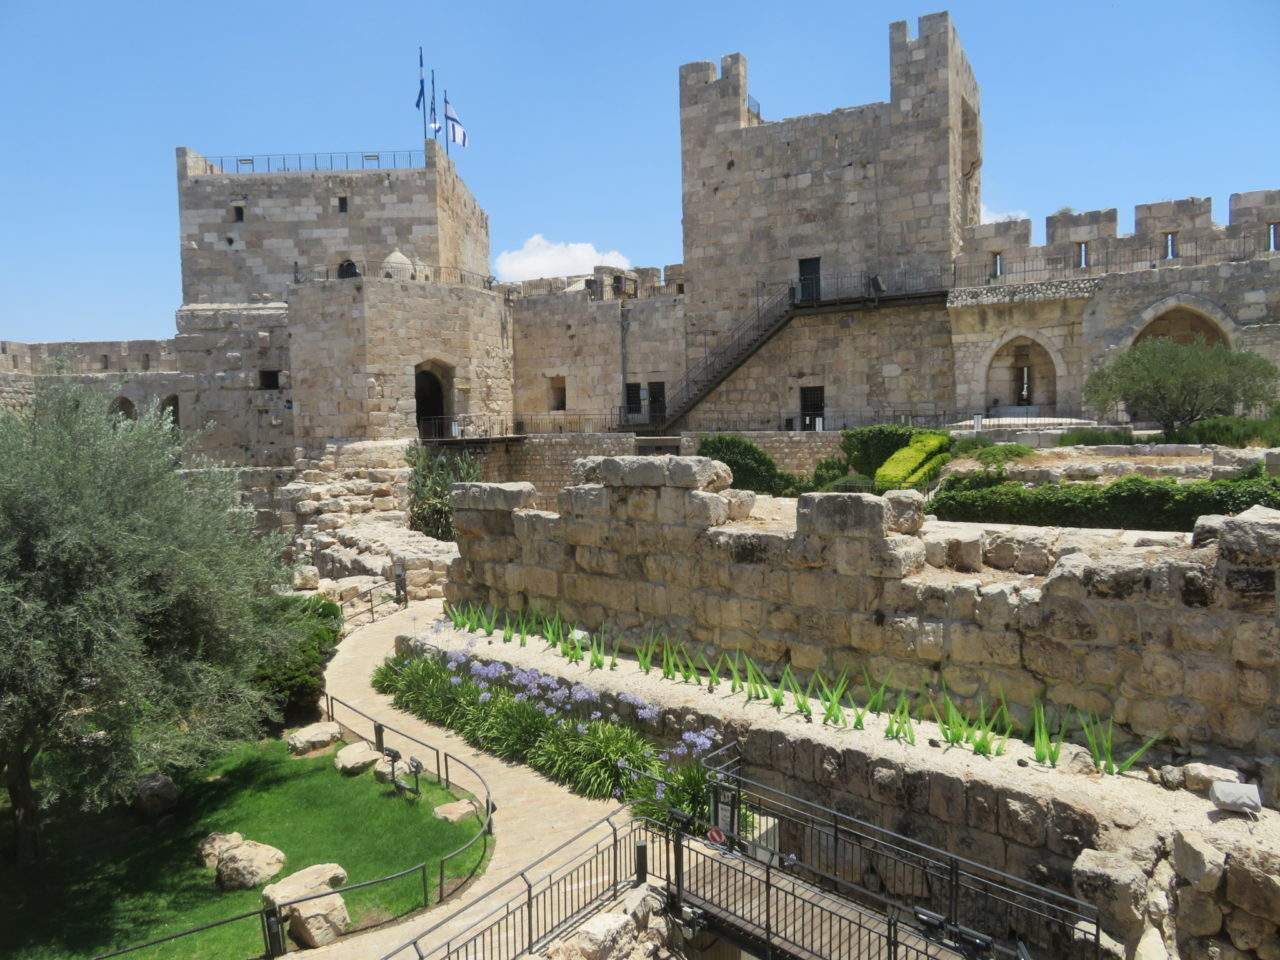 The joys of walking Jerusalem - Fortifications from different time periods (Ottoman, Crusader, ...) at the Tower of David